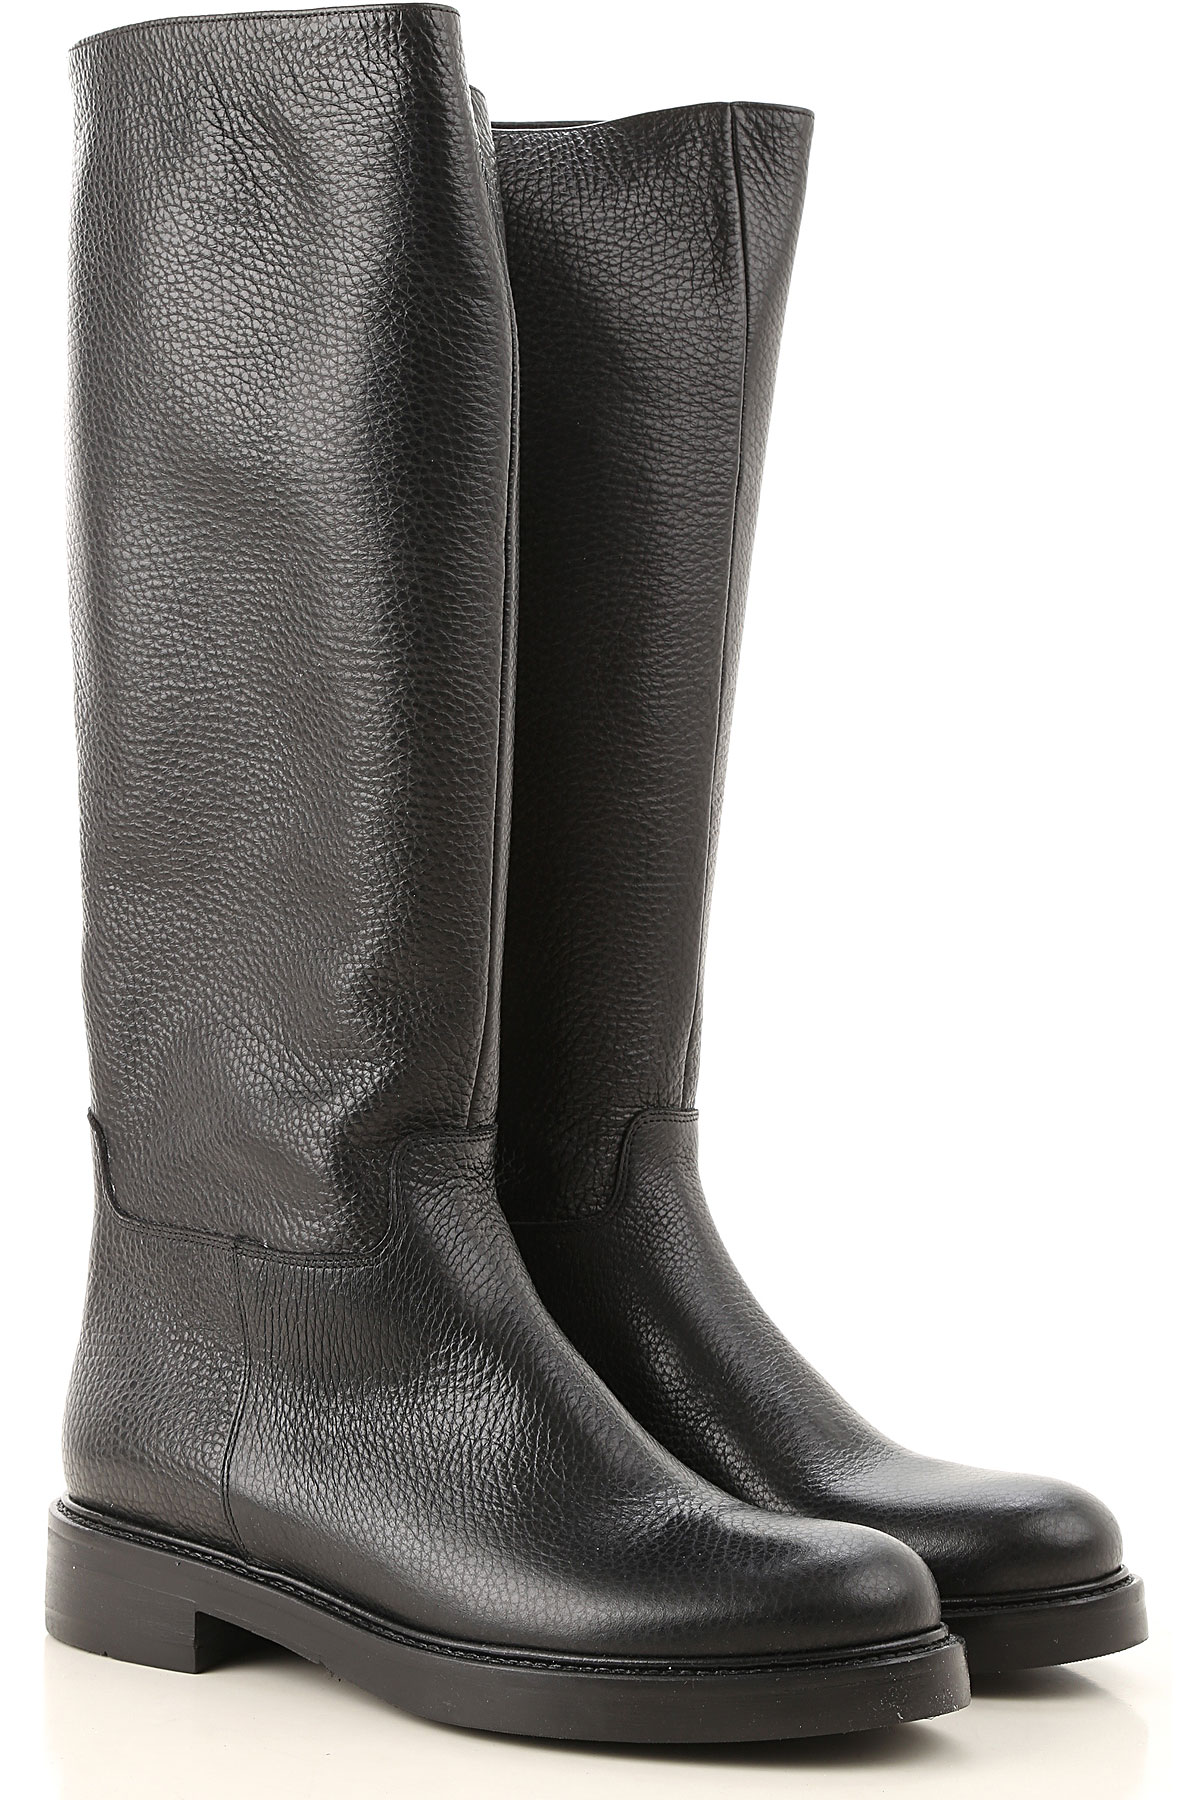 Guglielmo Rotta Boots for Women, Booties On Sale, Black, Leather, 2019, 10 6 8 9